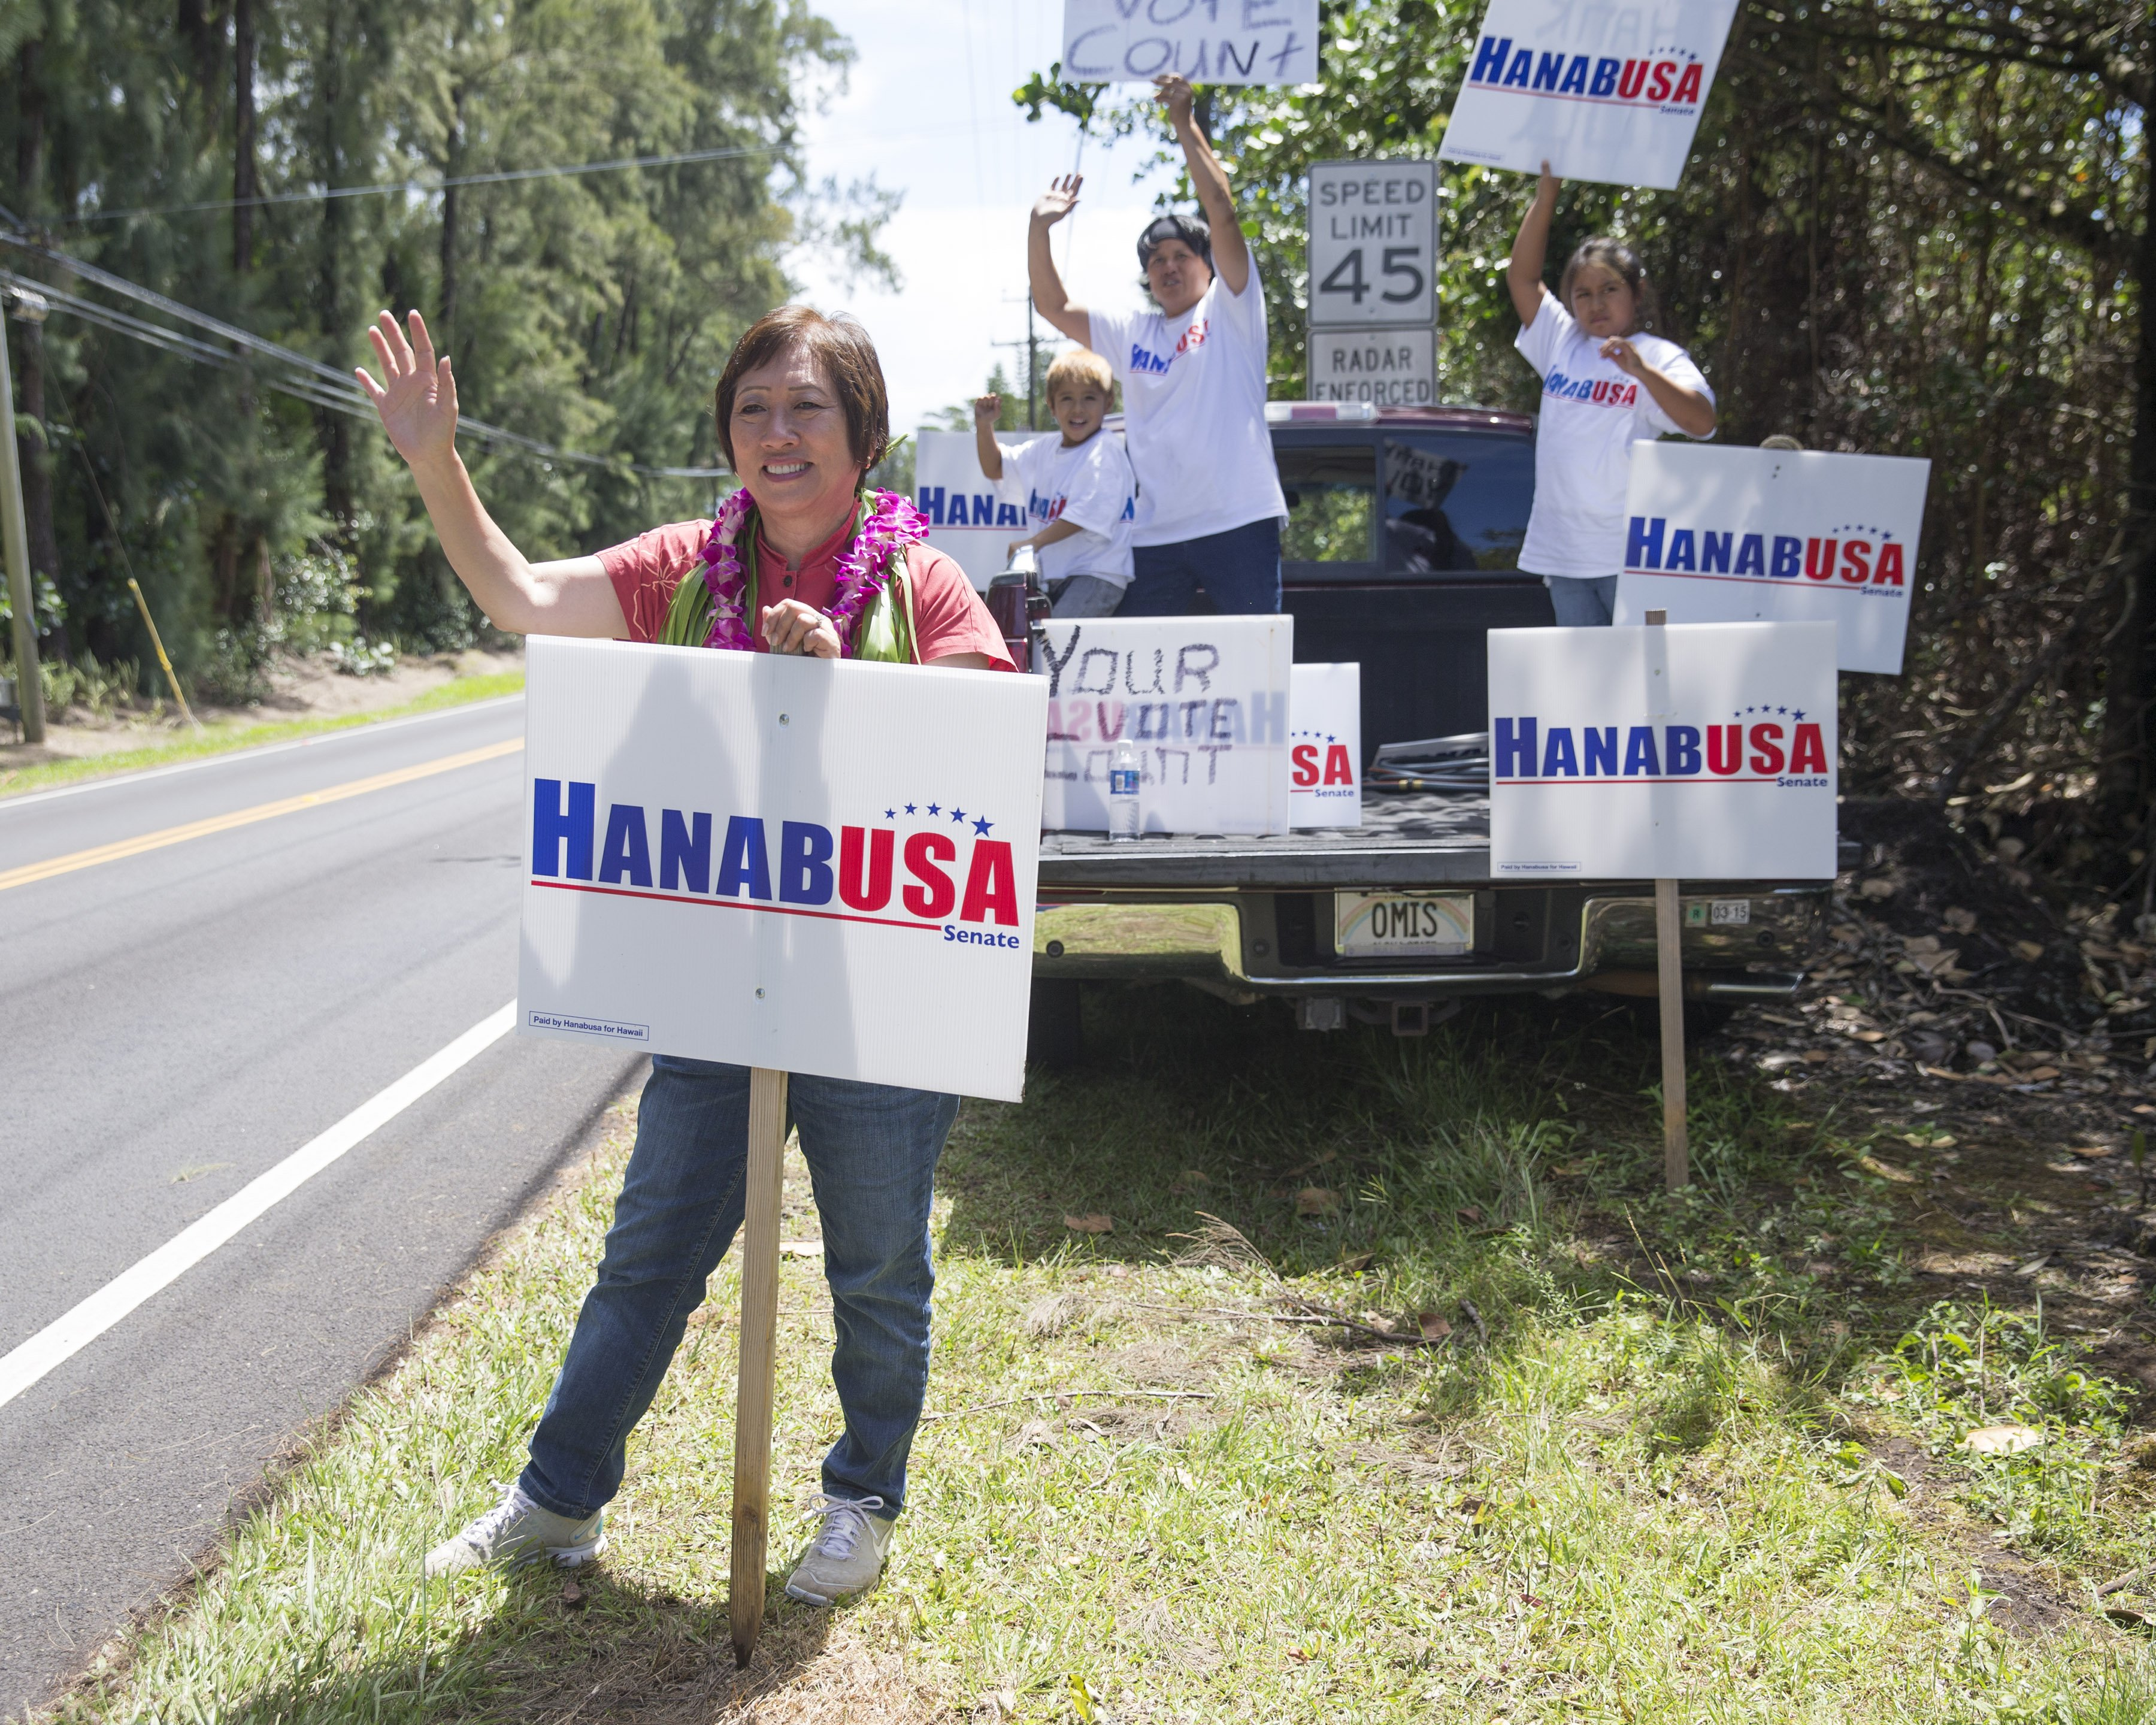 U.S. Rep. Colleen Hanabusa, left, and a group of supporters do some last minute campaigning near the polling place on Aug. 15, 2014, in Pahoa, Hawaii.